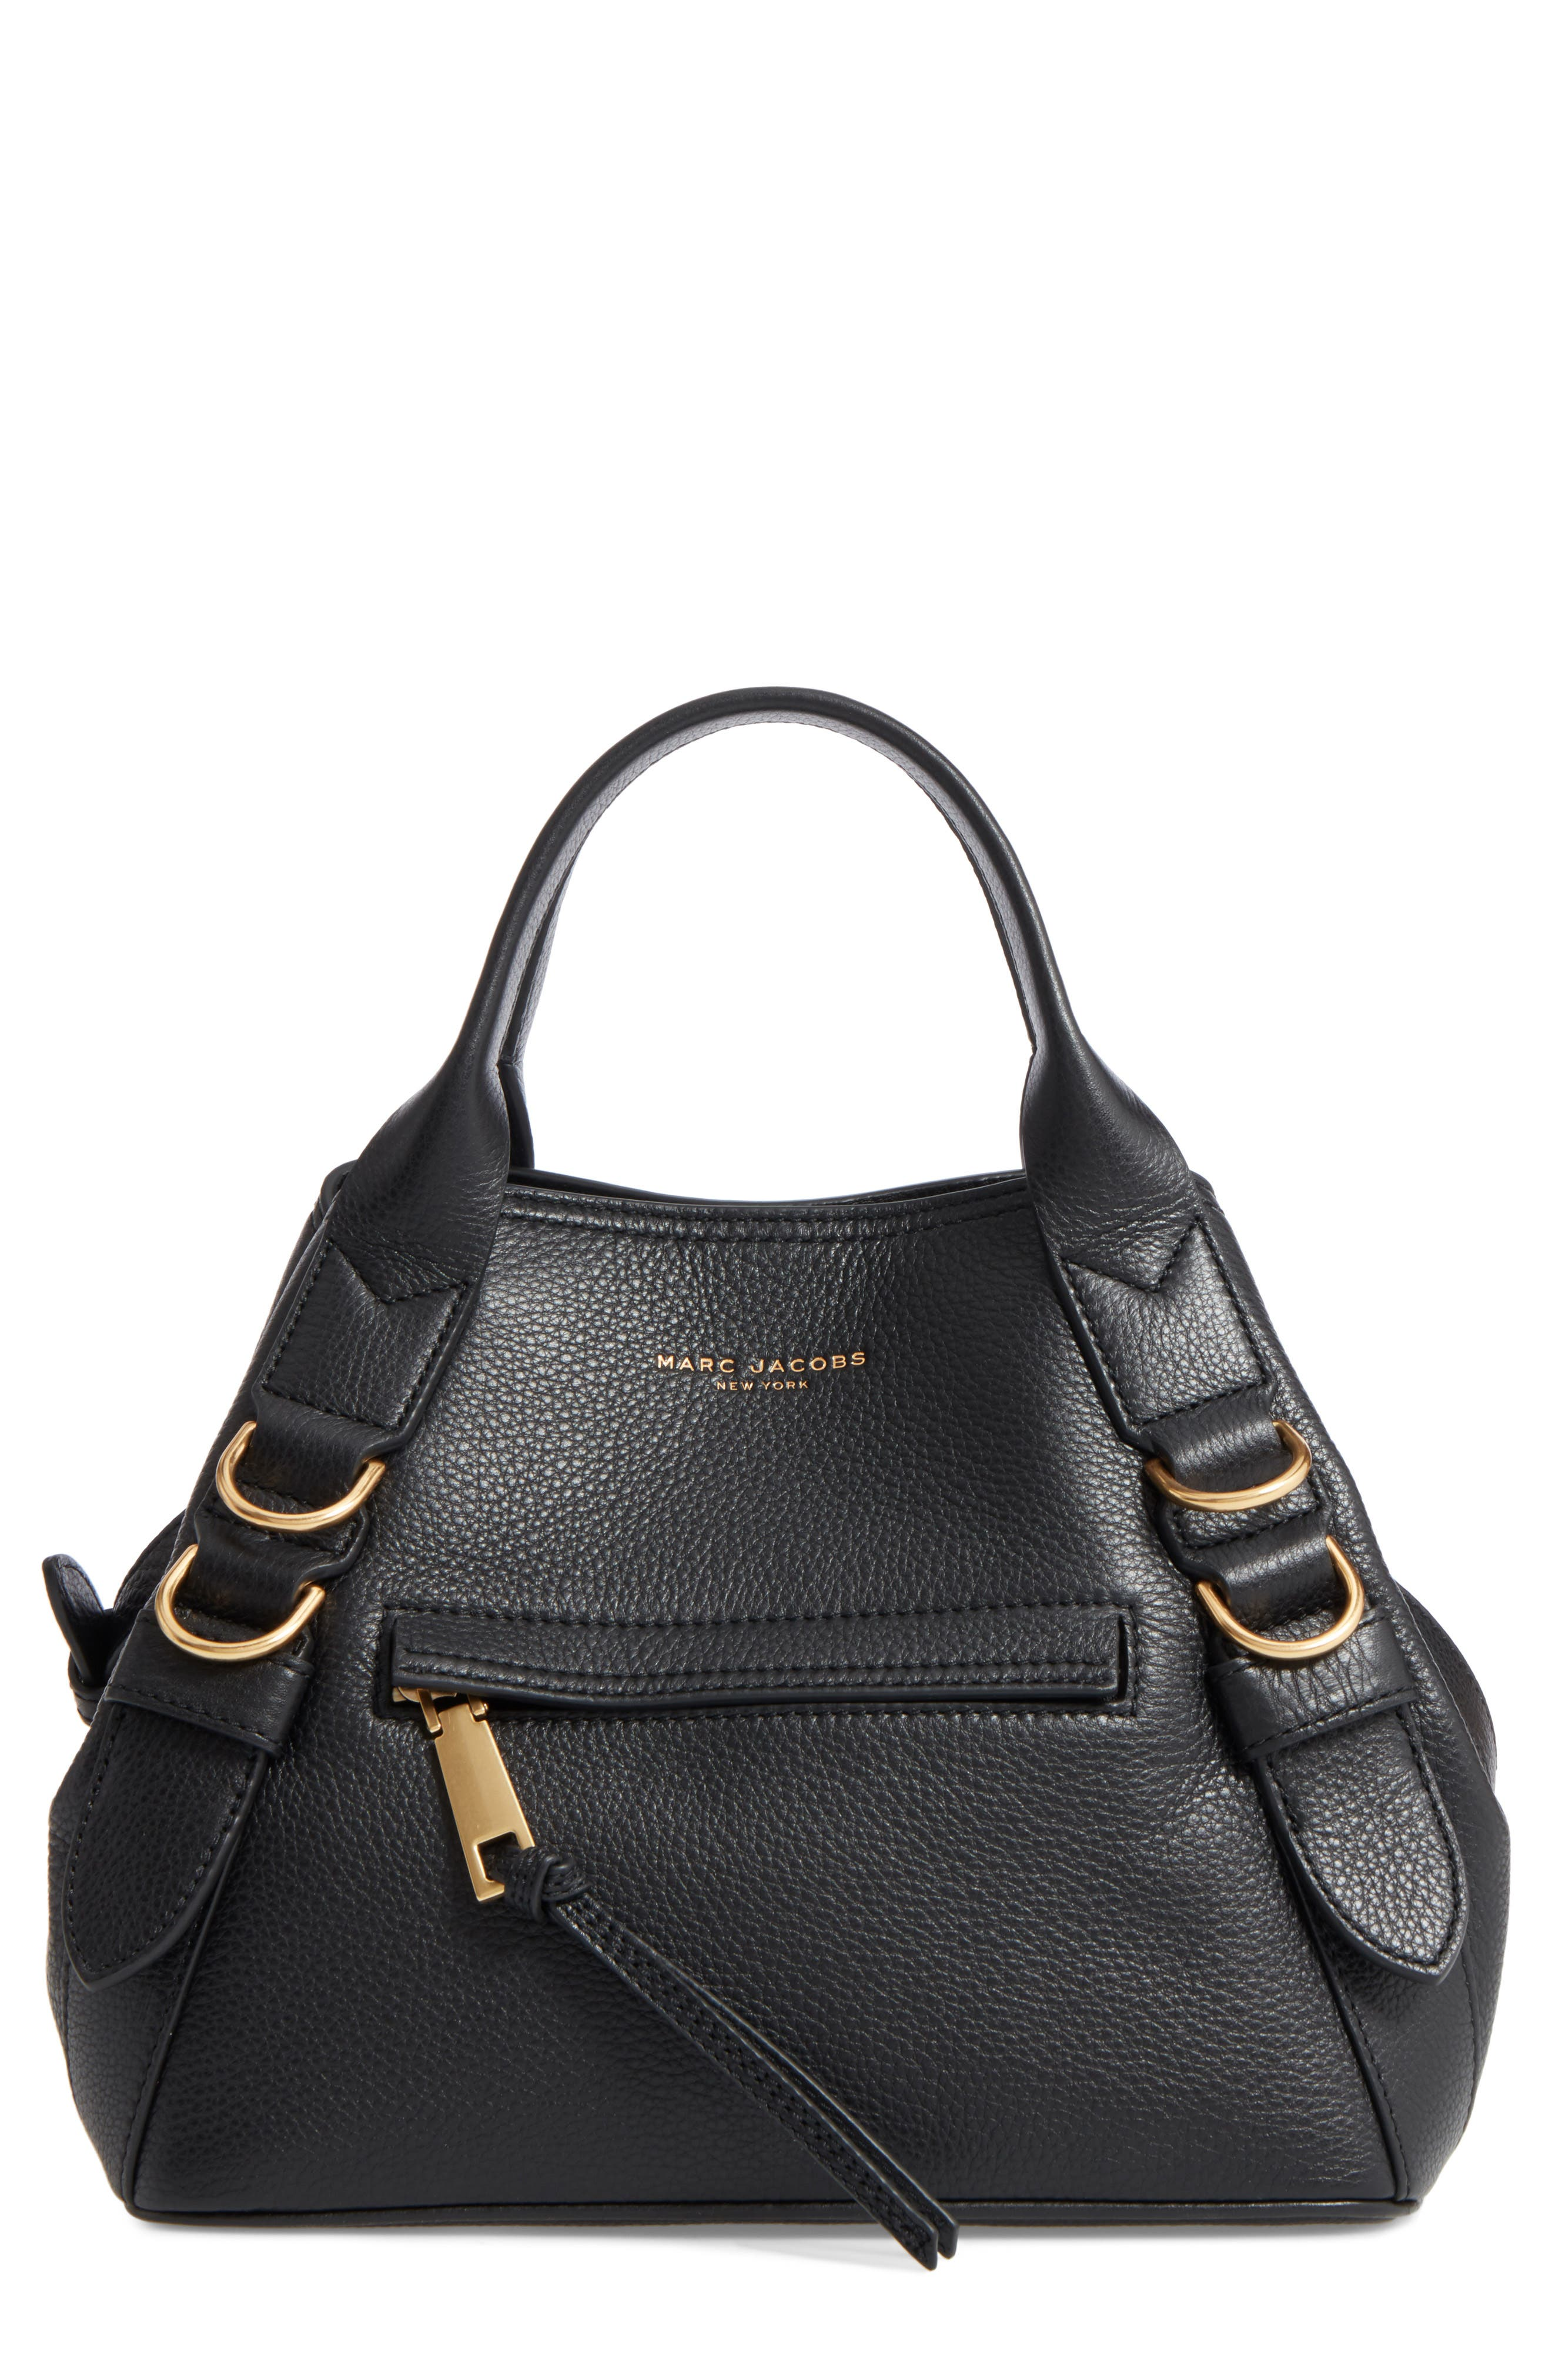 MARC JACOBS The Small Anchor Leather Shoulder Bag